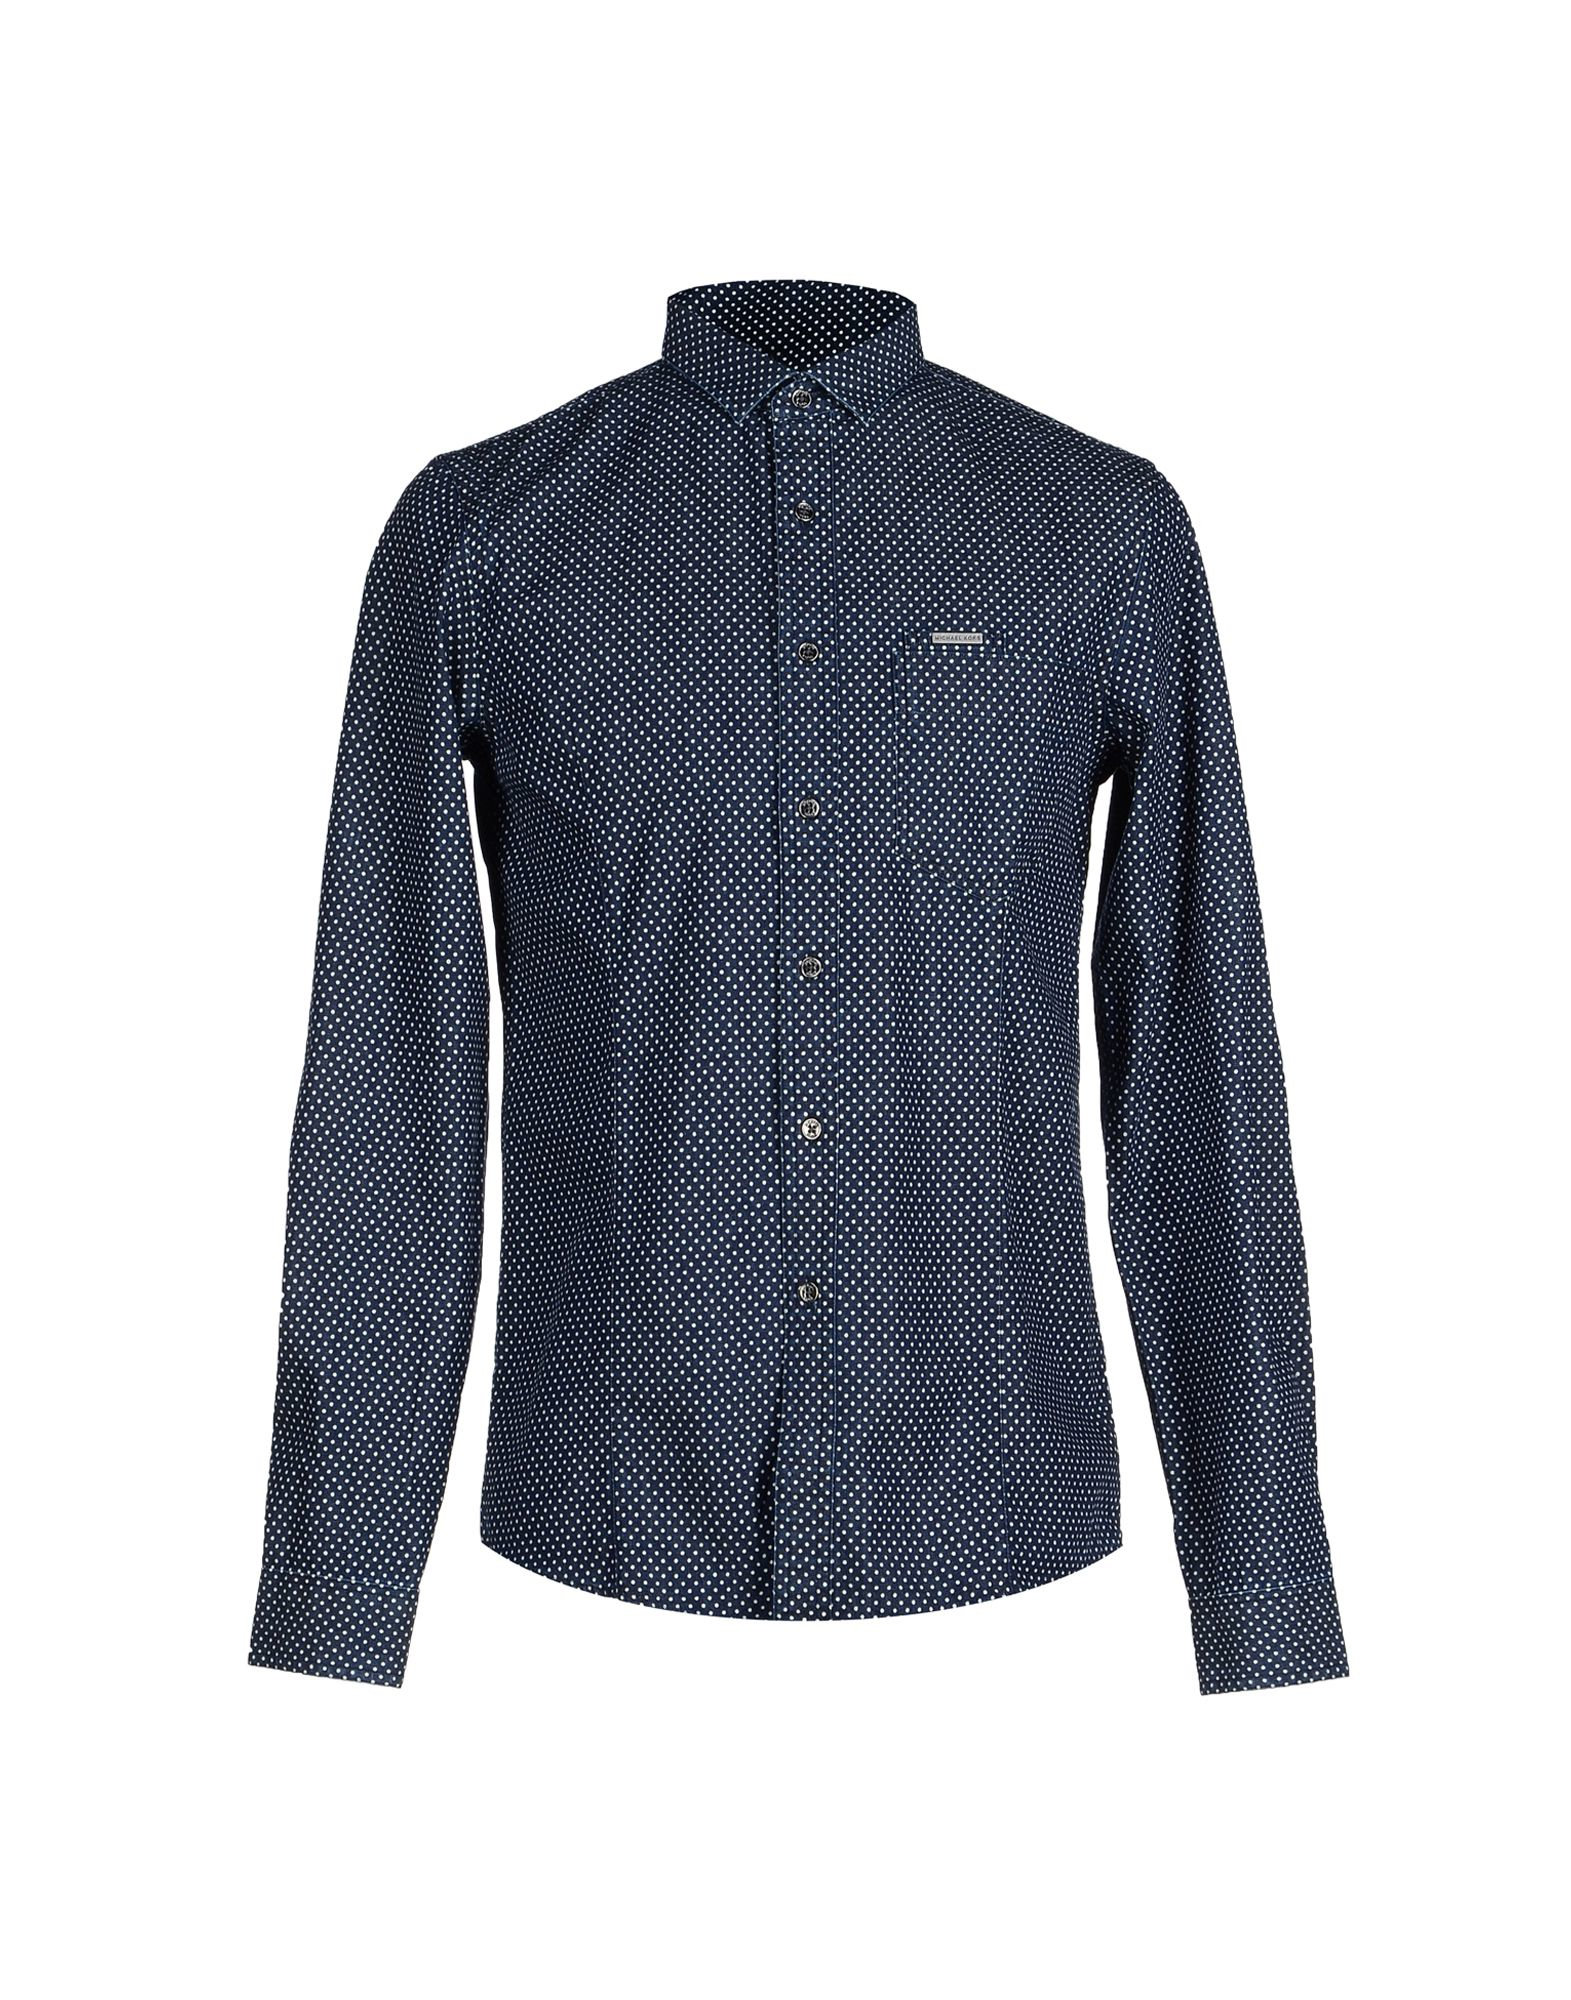 lyst michael kors denim shirt in blue for men. Black Bedroom Furniture Sets. Home Design Ideas